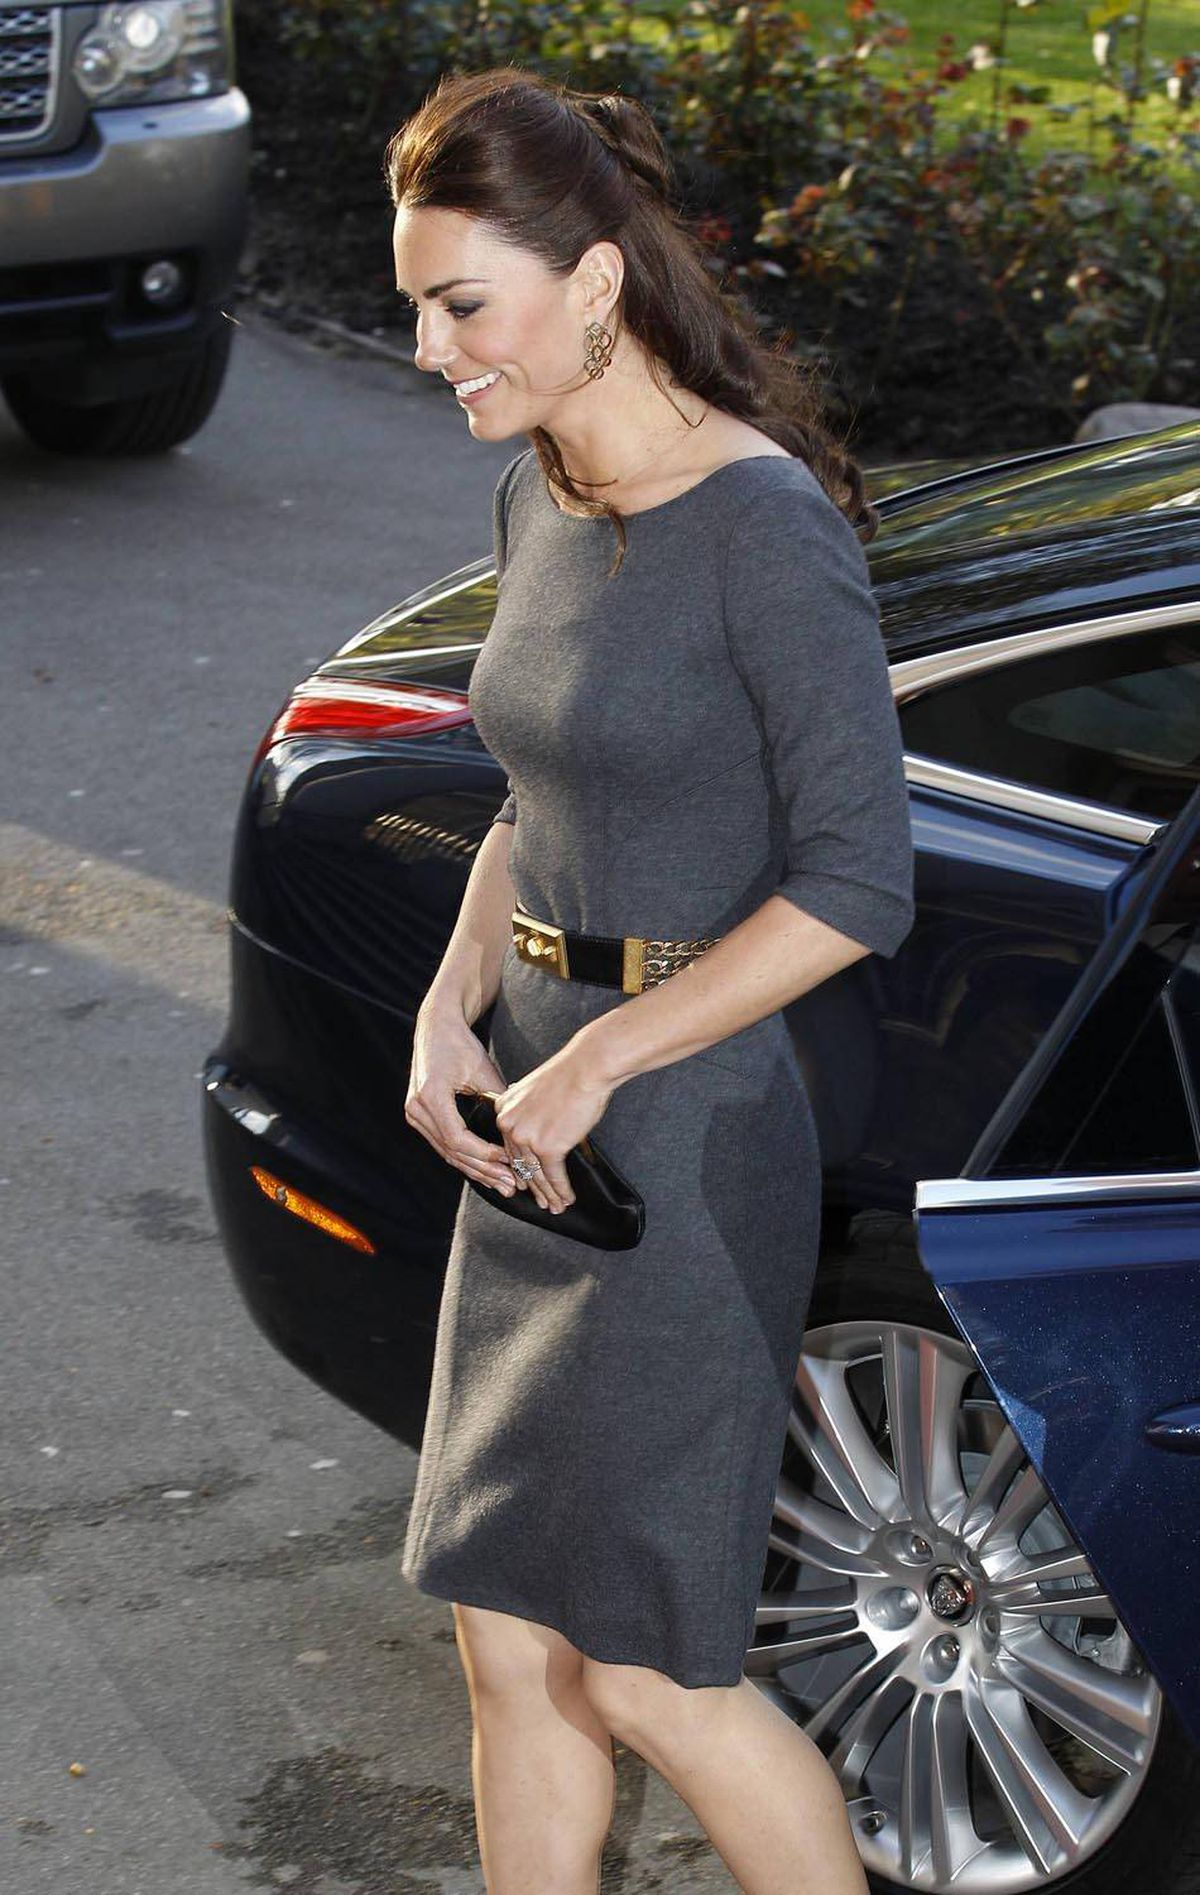 Later that day she changes into a form-fitting dress by Amanda Wakeley for a stop at the Imperial War Museum.